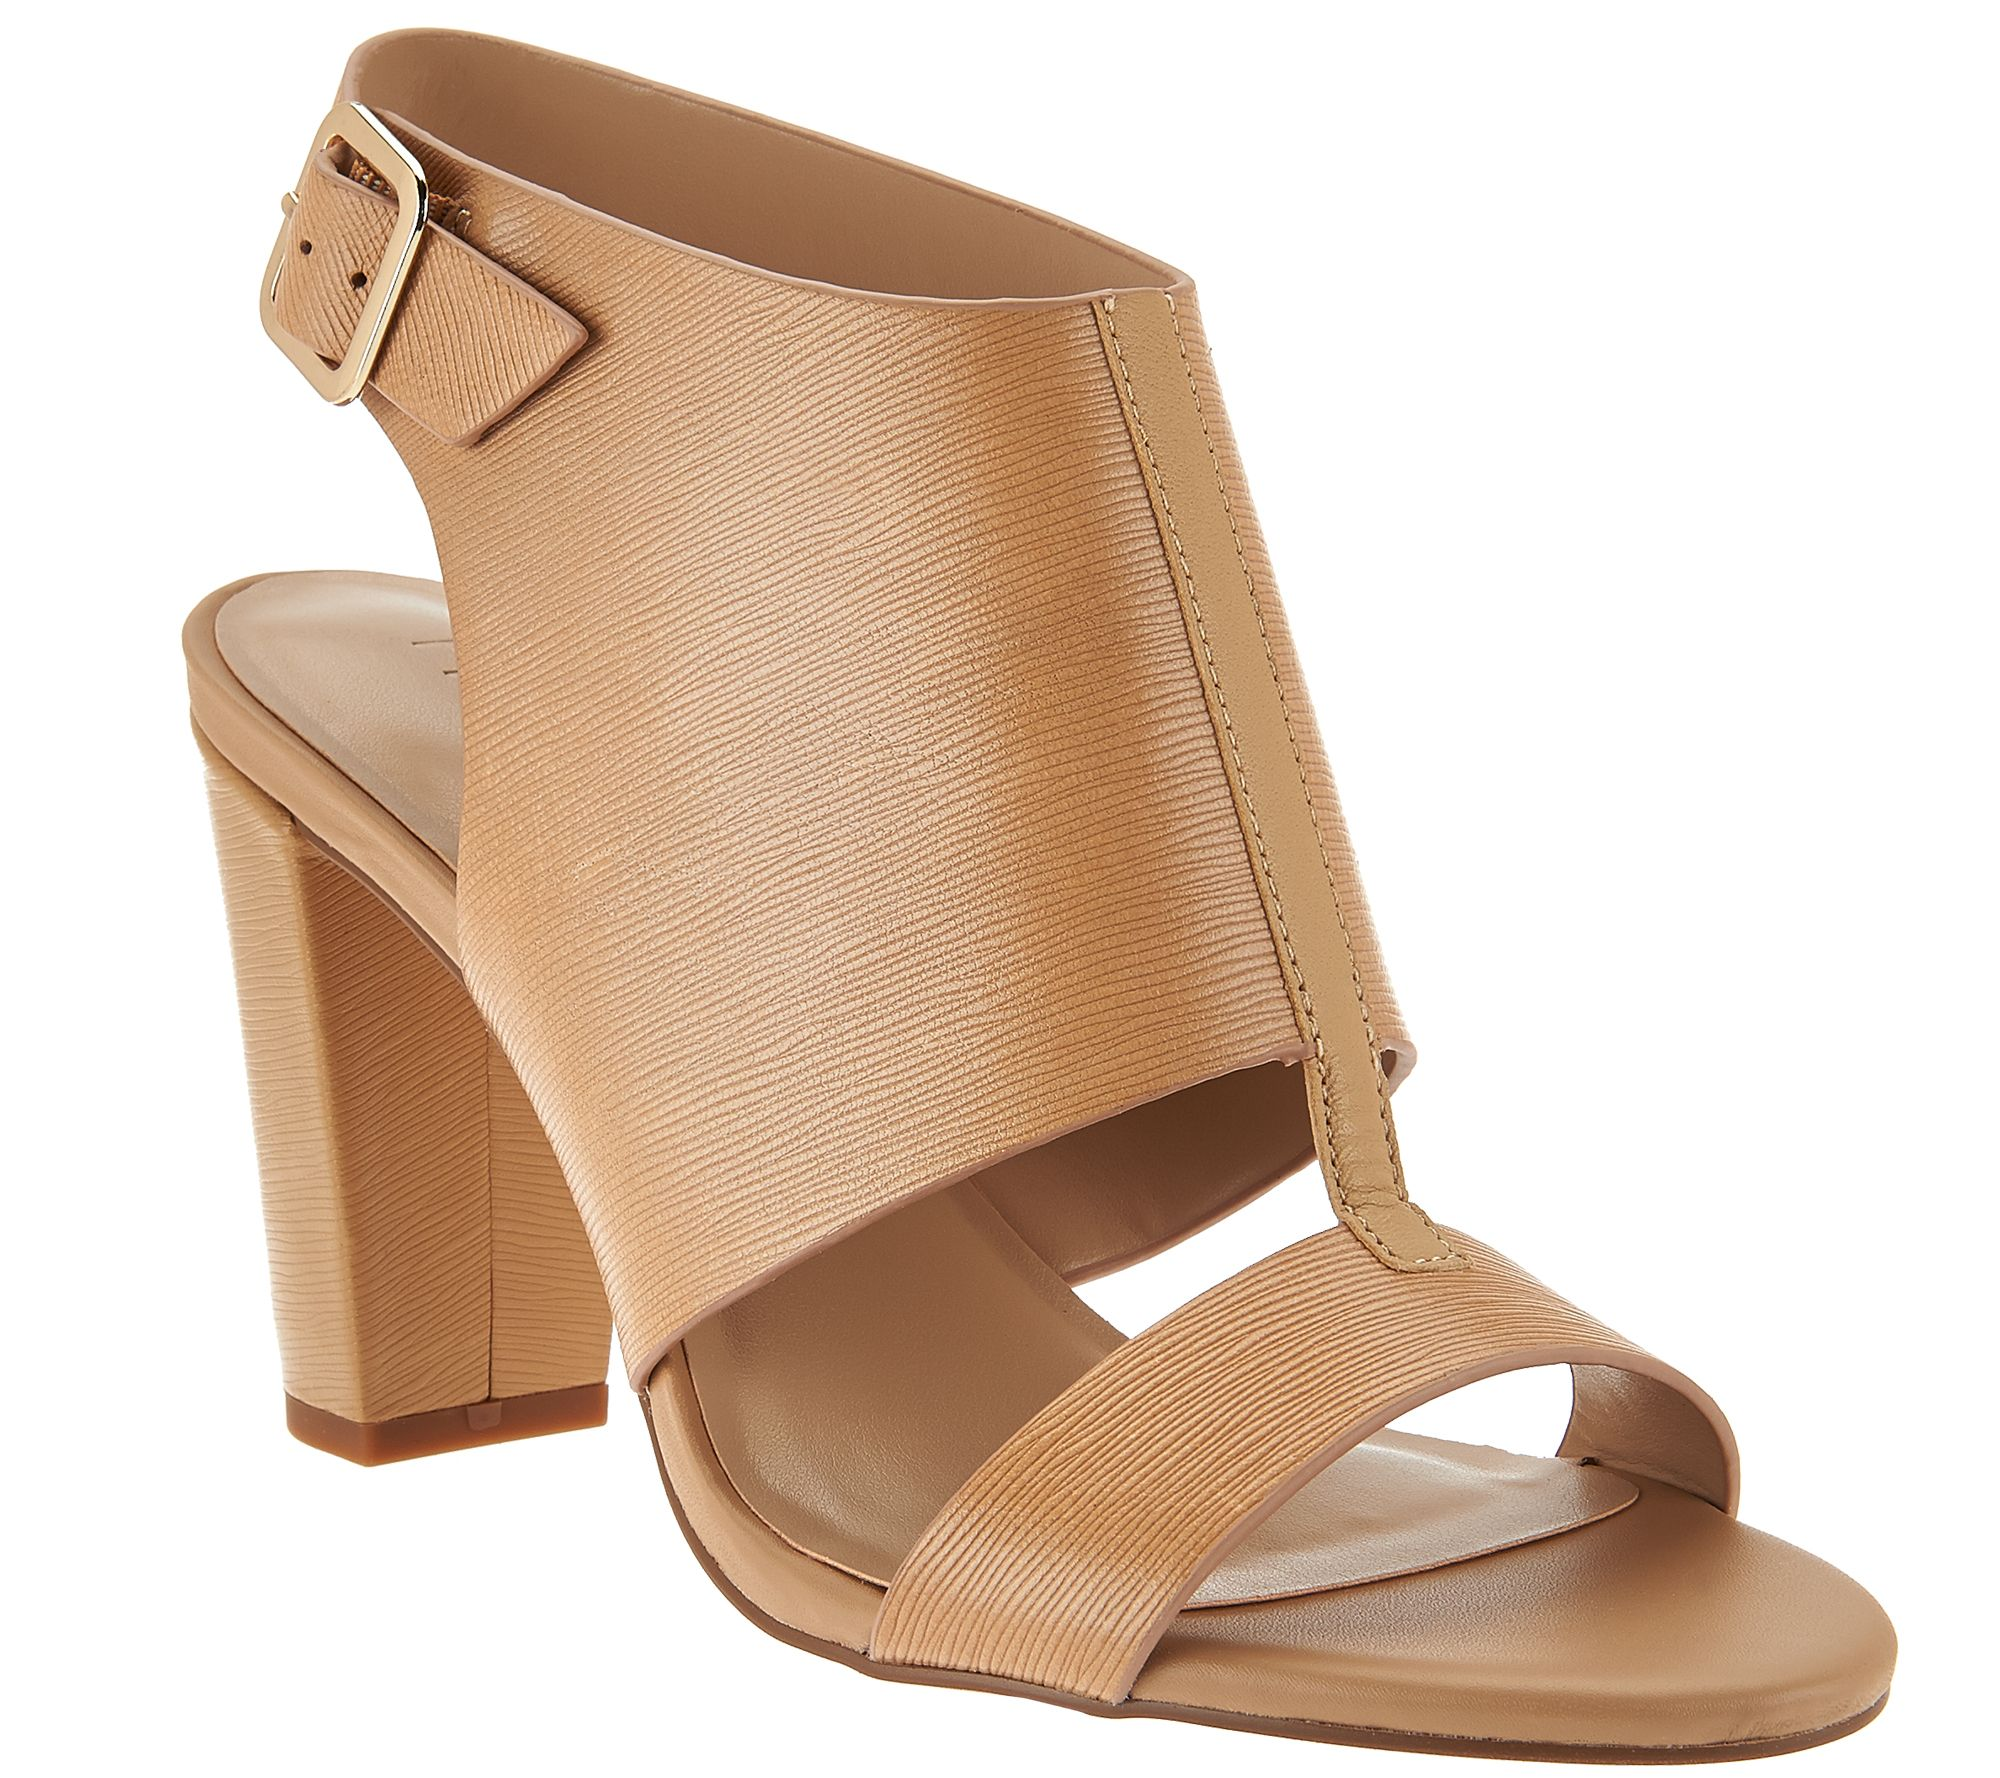 e2c9a2bbeb2143 H by Halston Leather Block Heel Sandals - Catrina - Page 1 — QVC.com